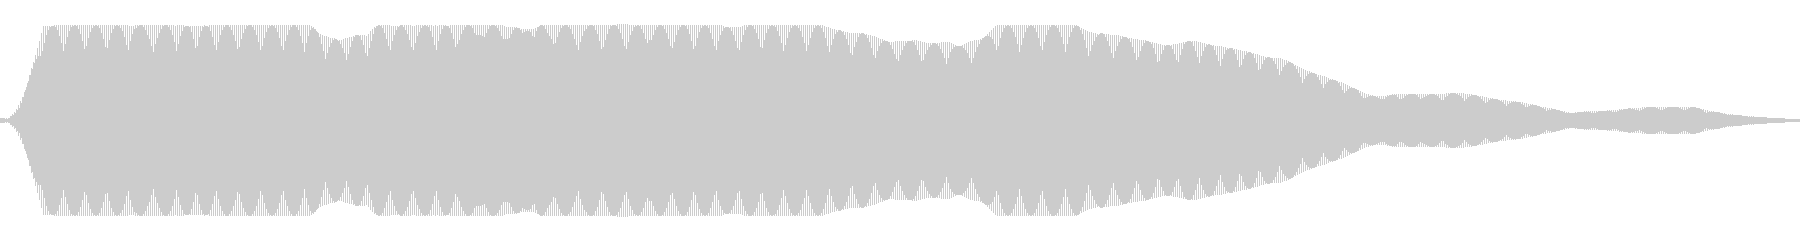 Power (sound that extends for a long time in the low-time range)'s unreproduced waveform